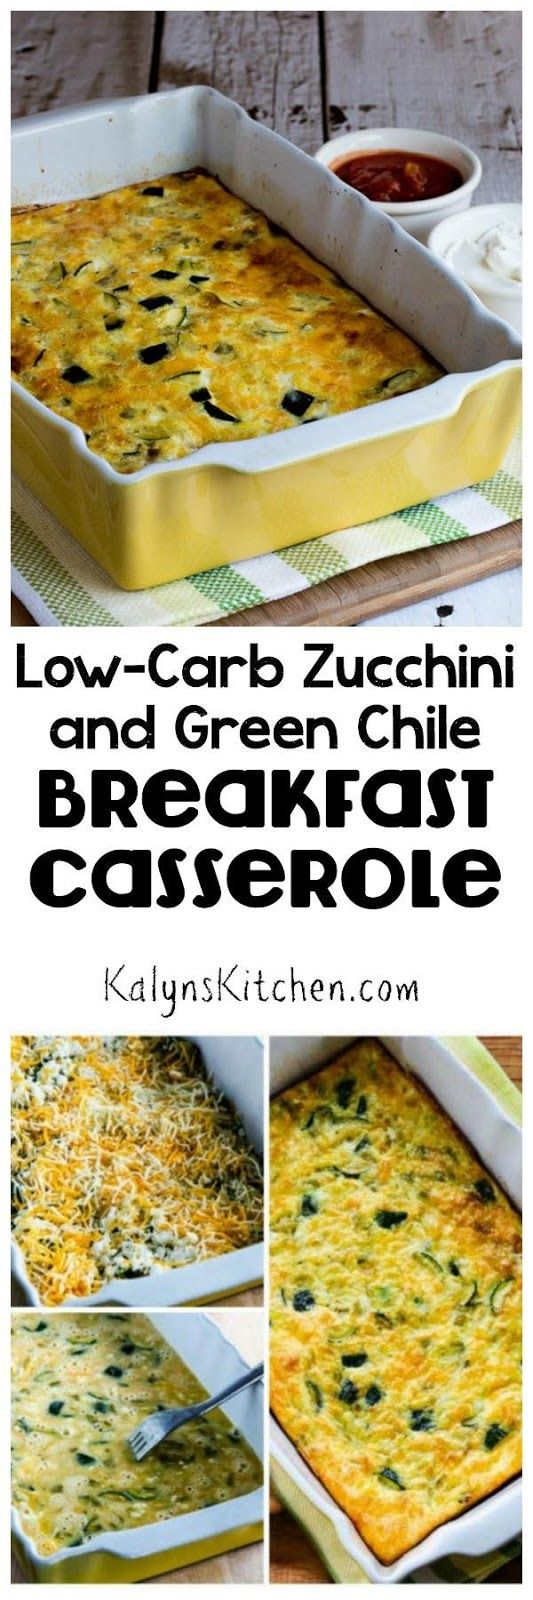 This Low-Carb Zucchini and Green Chile Breakfast Casserole is a delicious way to use extra zucchini; PIN NOW because you know you'll be needing zucchini ideas soon!  [found on KalynsKitchen.com]